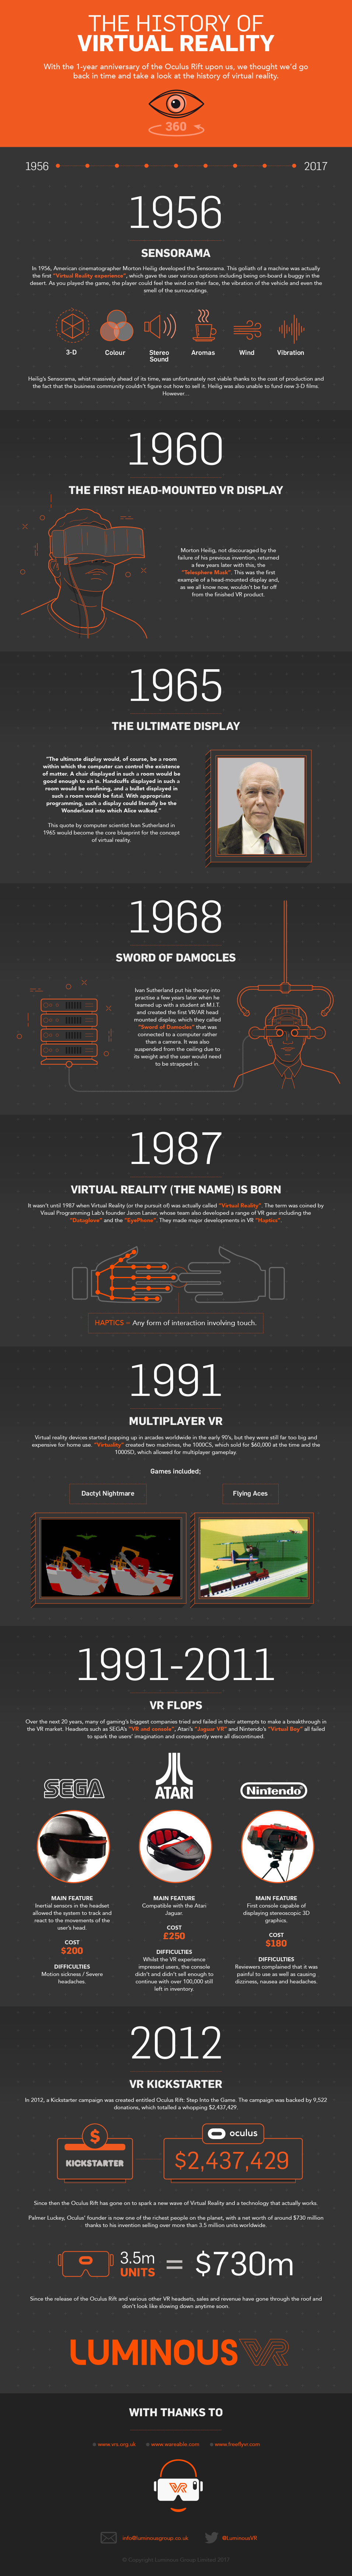 History Of Virtual Reality [Infographic]